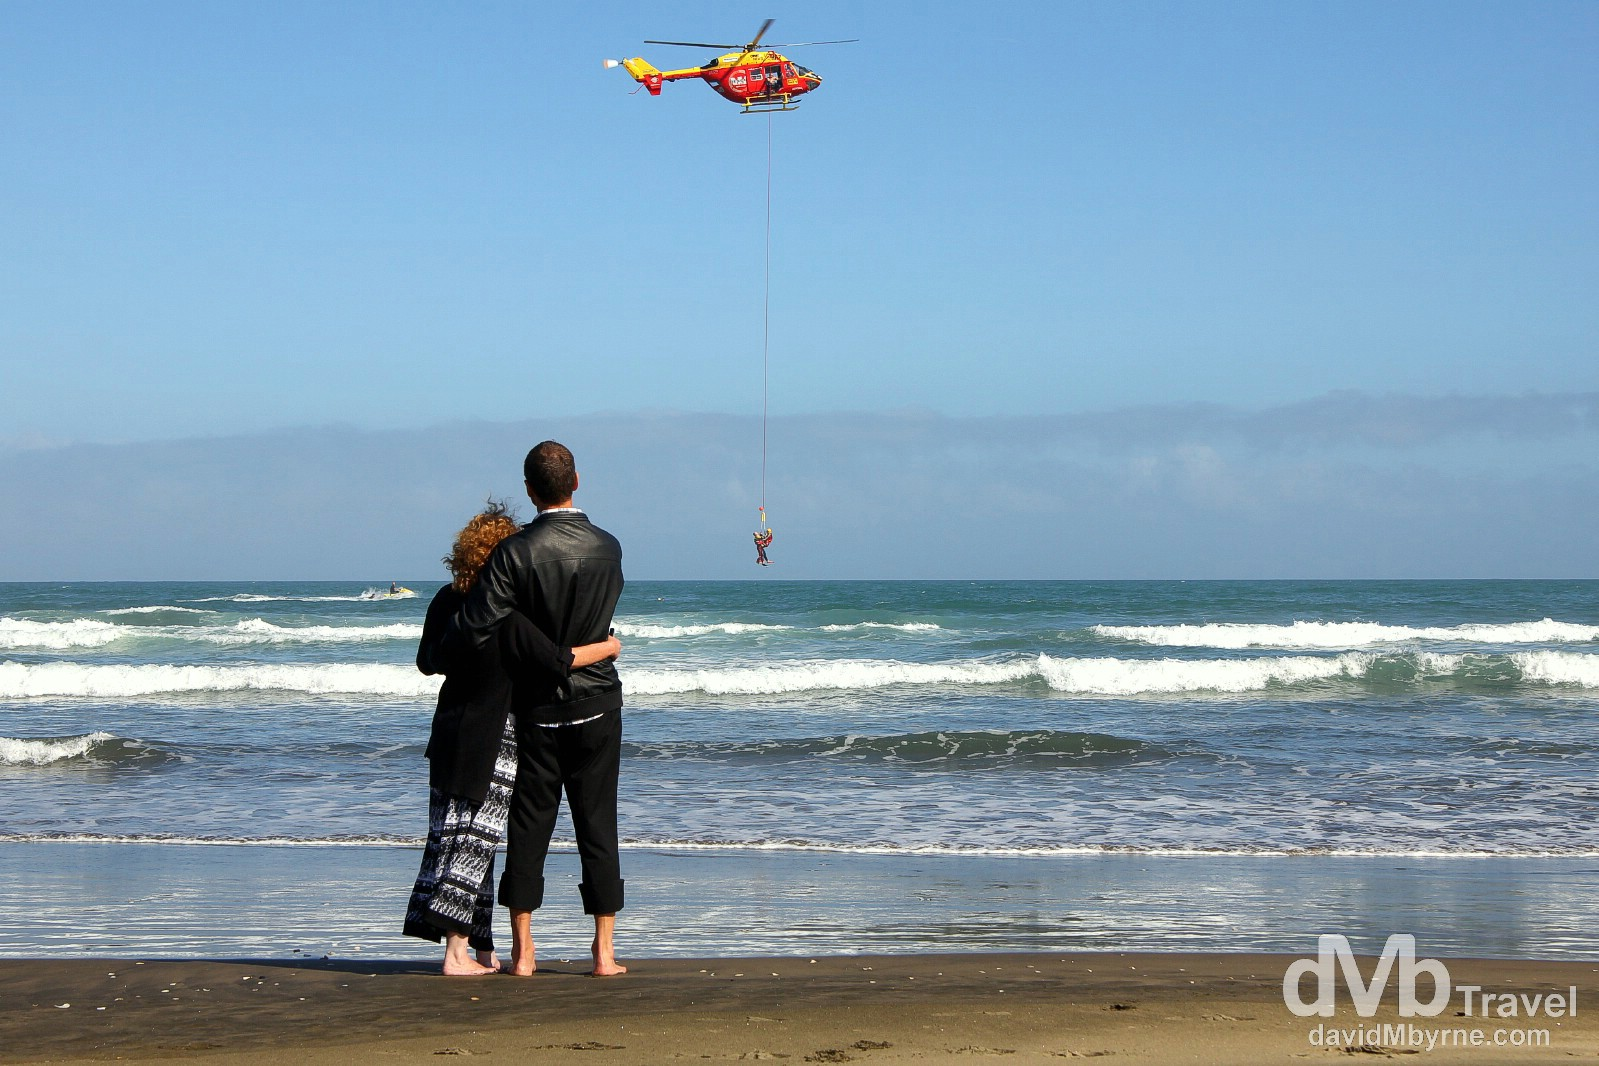 Coastguard rescue drills off the black sand Muriwai Beach, North Island, New Zealand. April 27th 2012.